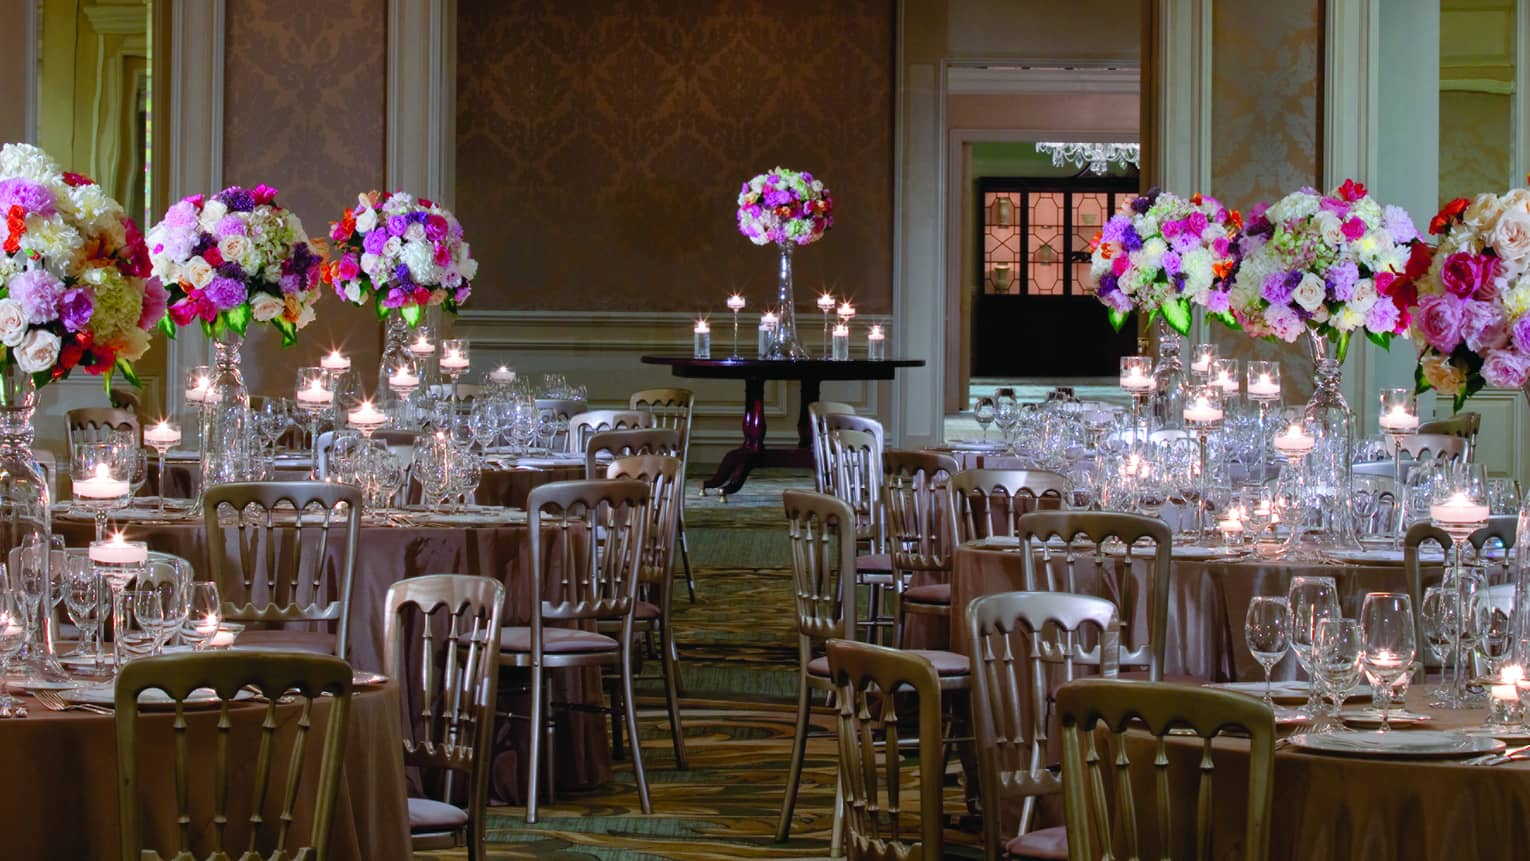 Tall pink and white floral arrangements on small round banquet tables with crystal glassware